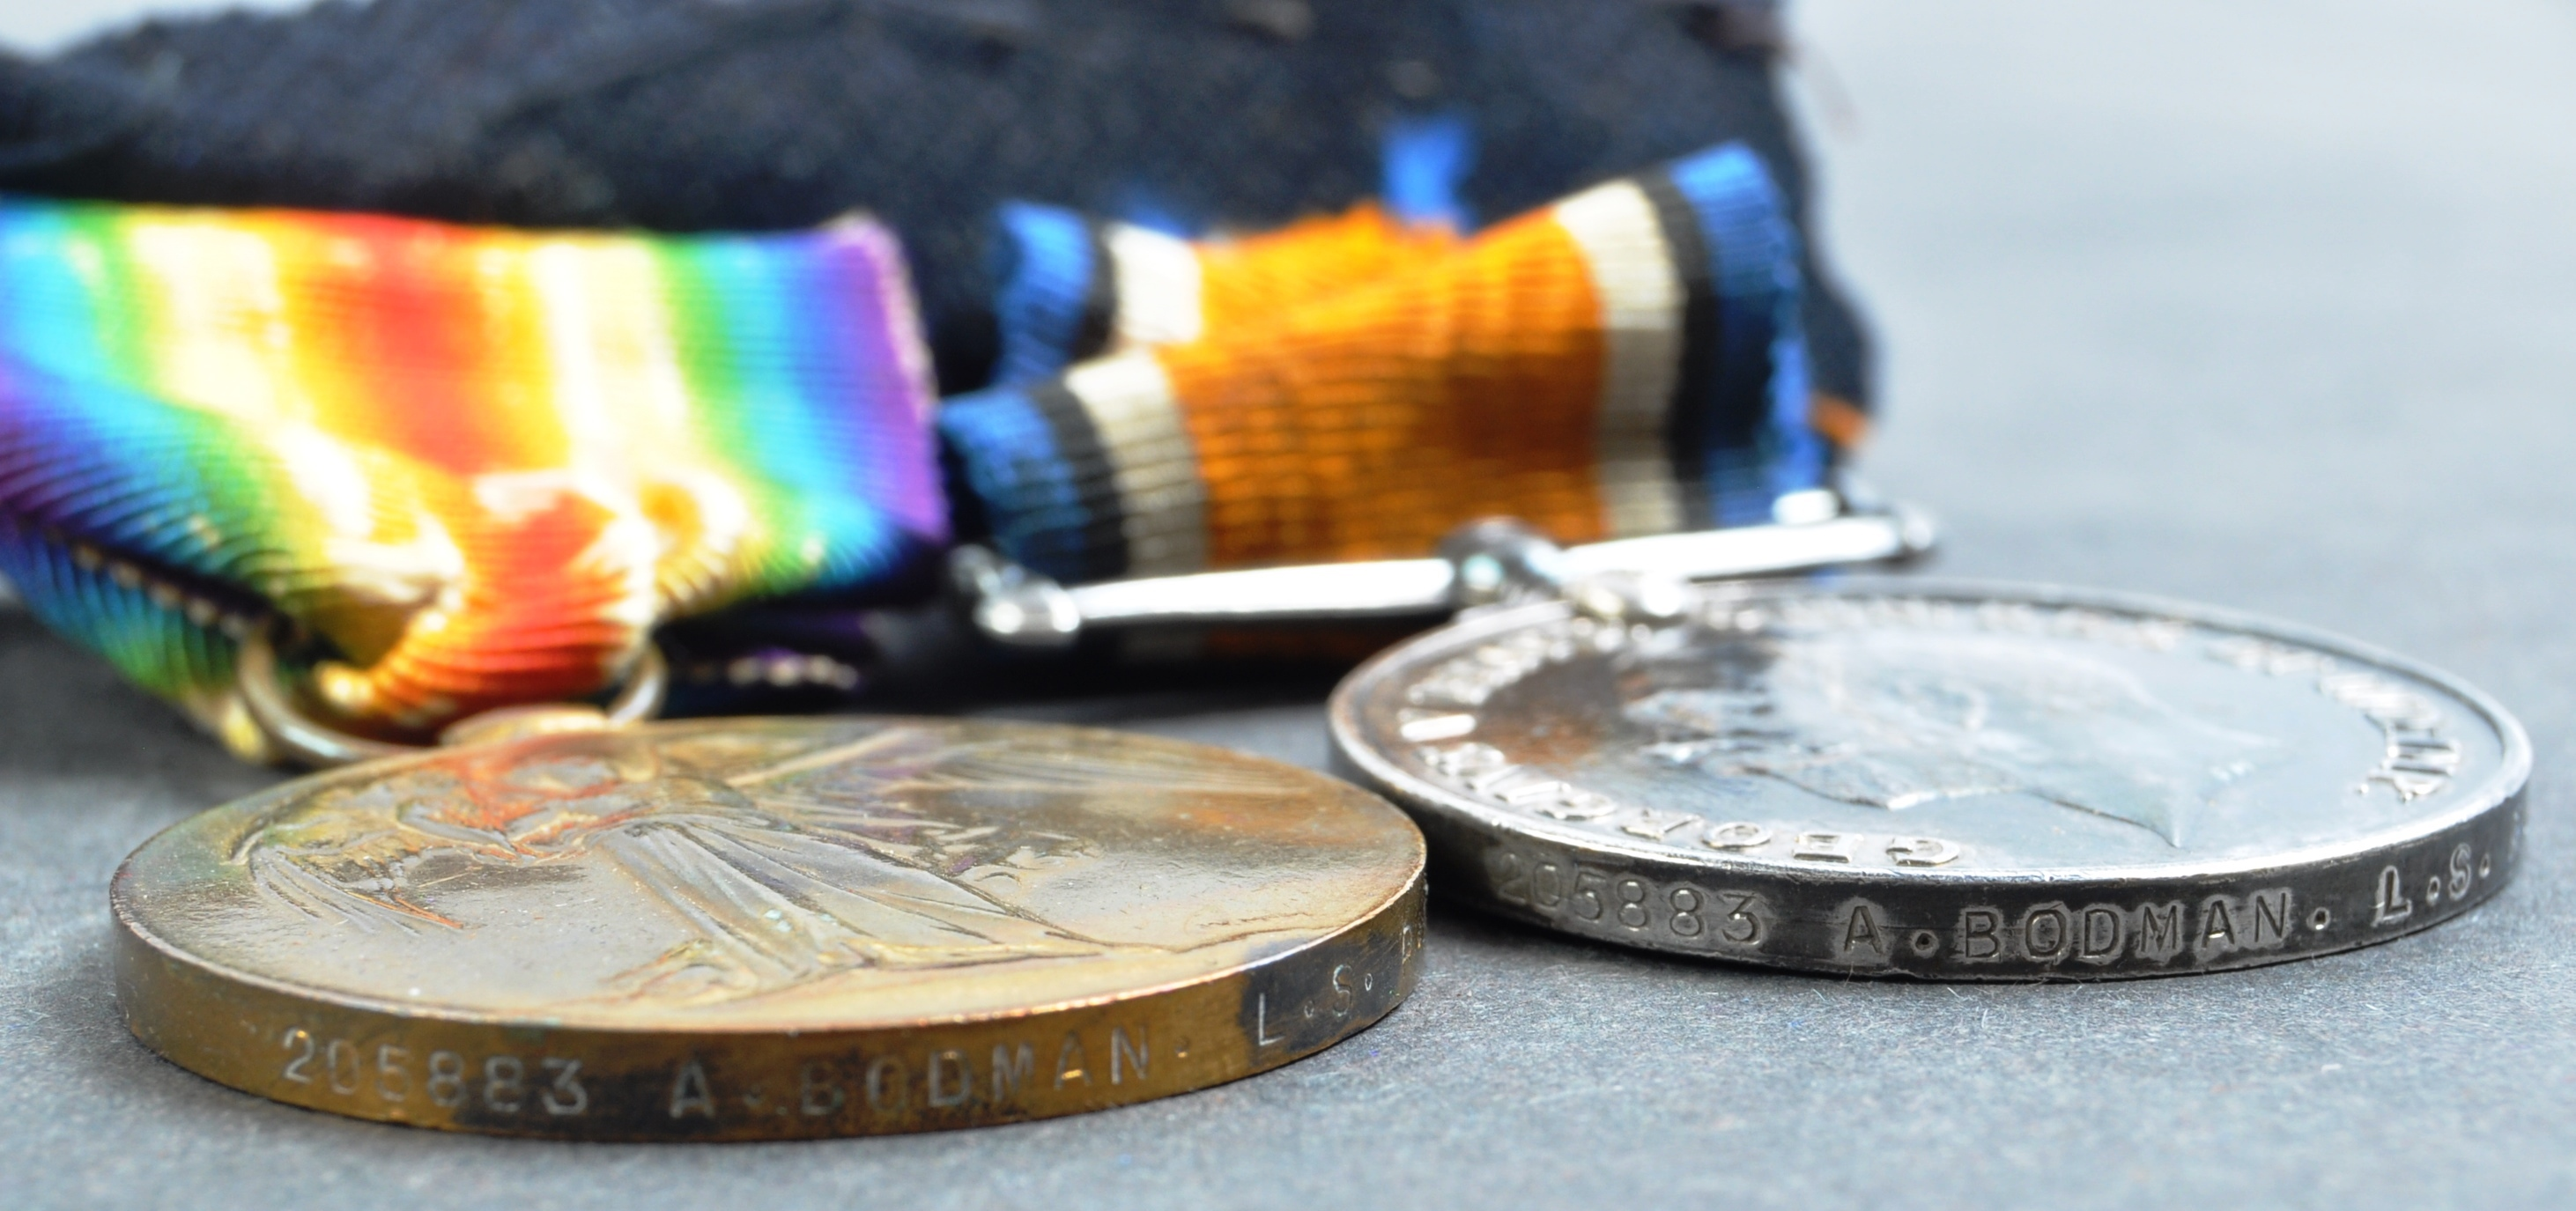 WWI FIRST WORLD WAR MEDAL GROUP - LEADING SEAMAN ROYAL NAVY - Image 8 of 10